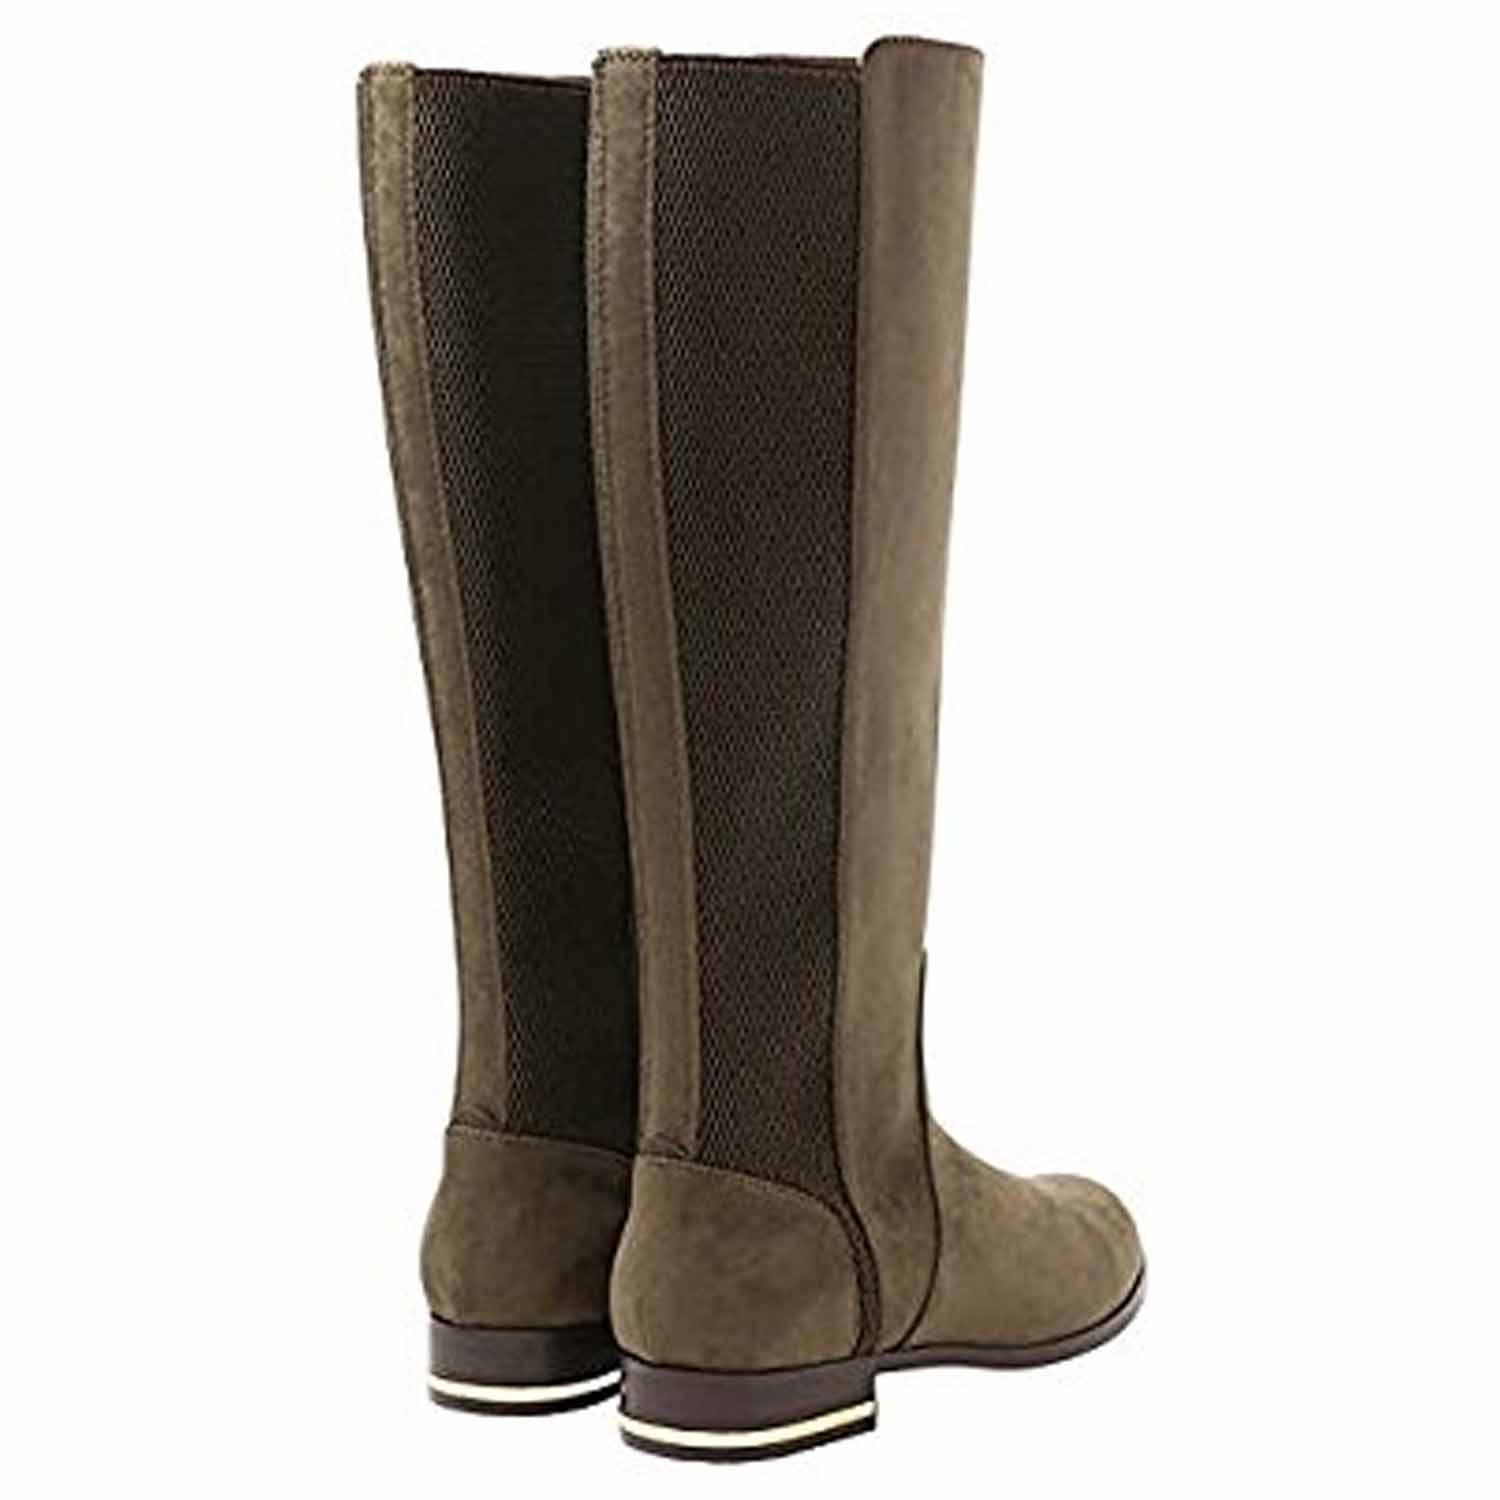 Kensie Women/'s Tall Knee High Suede Boots Tayson Taupe  Sz 7 9.5 10